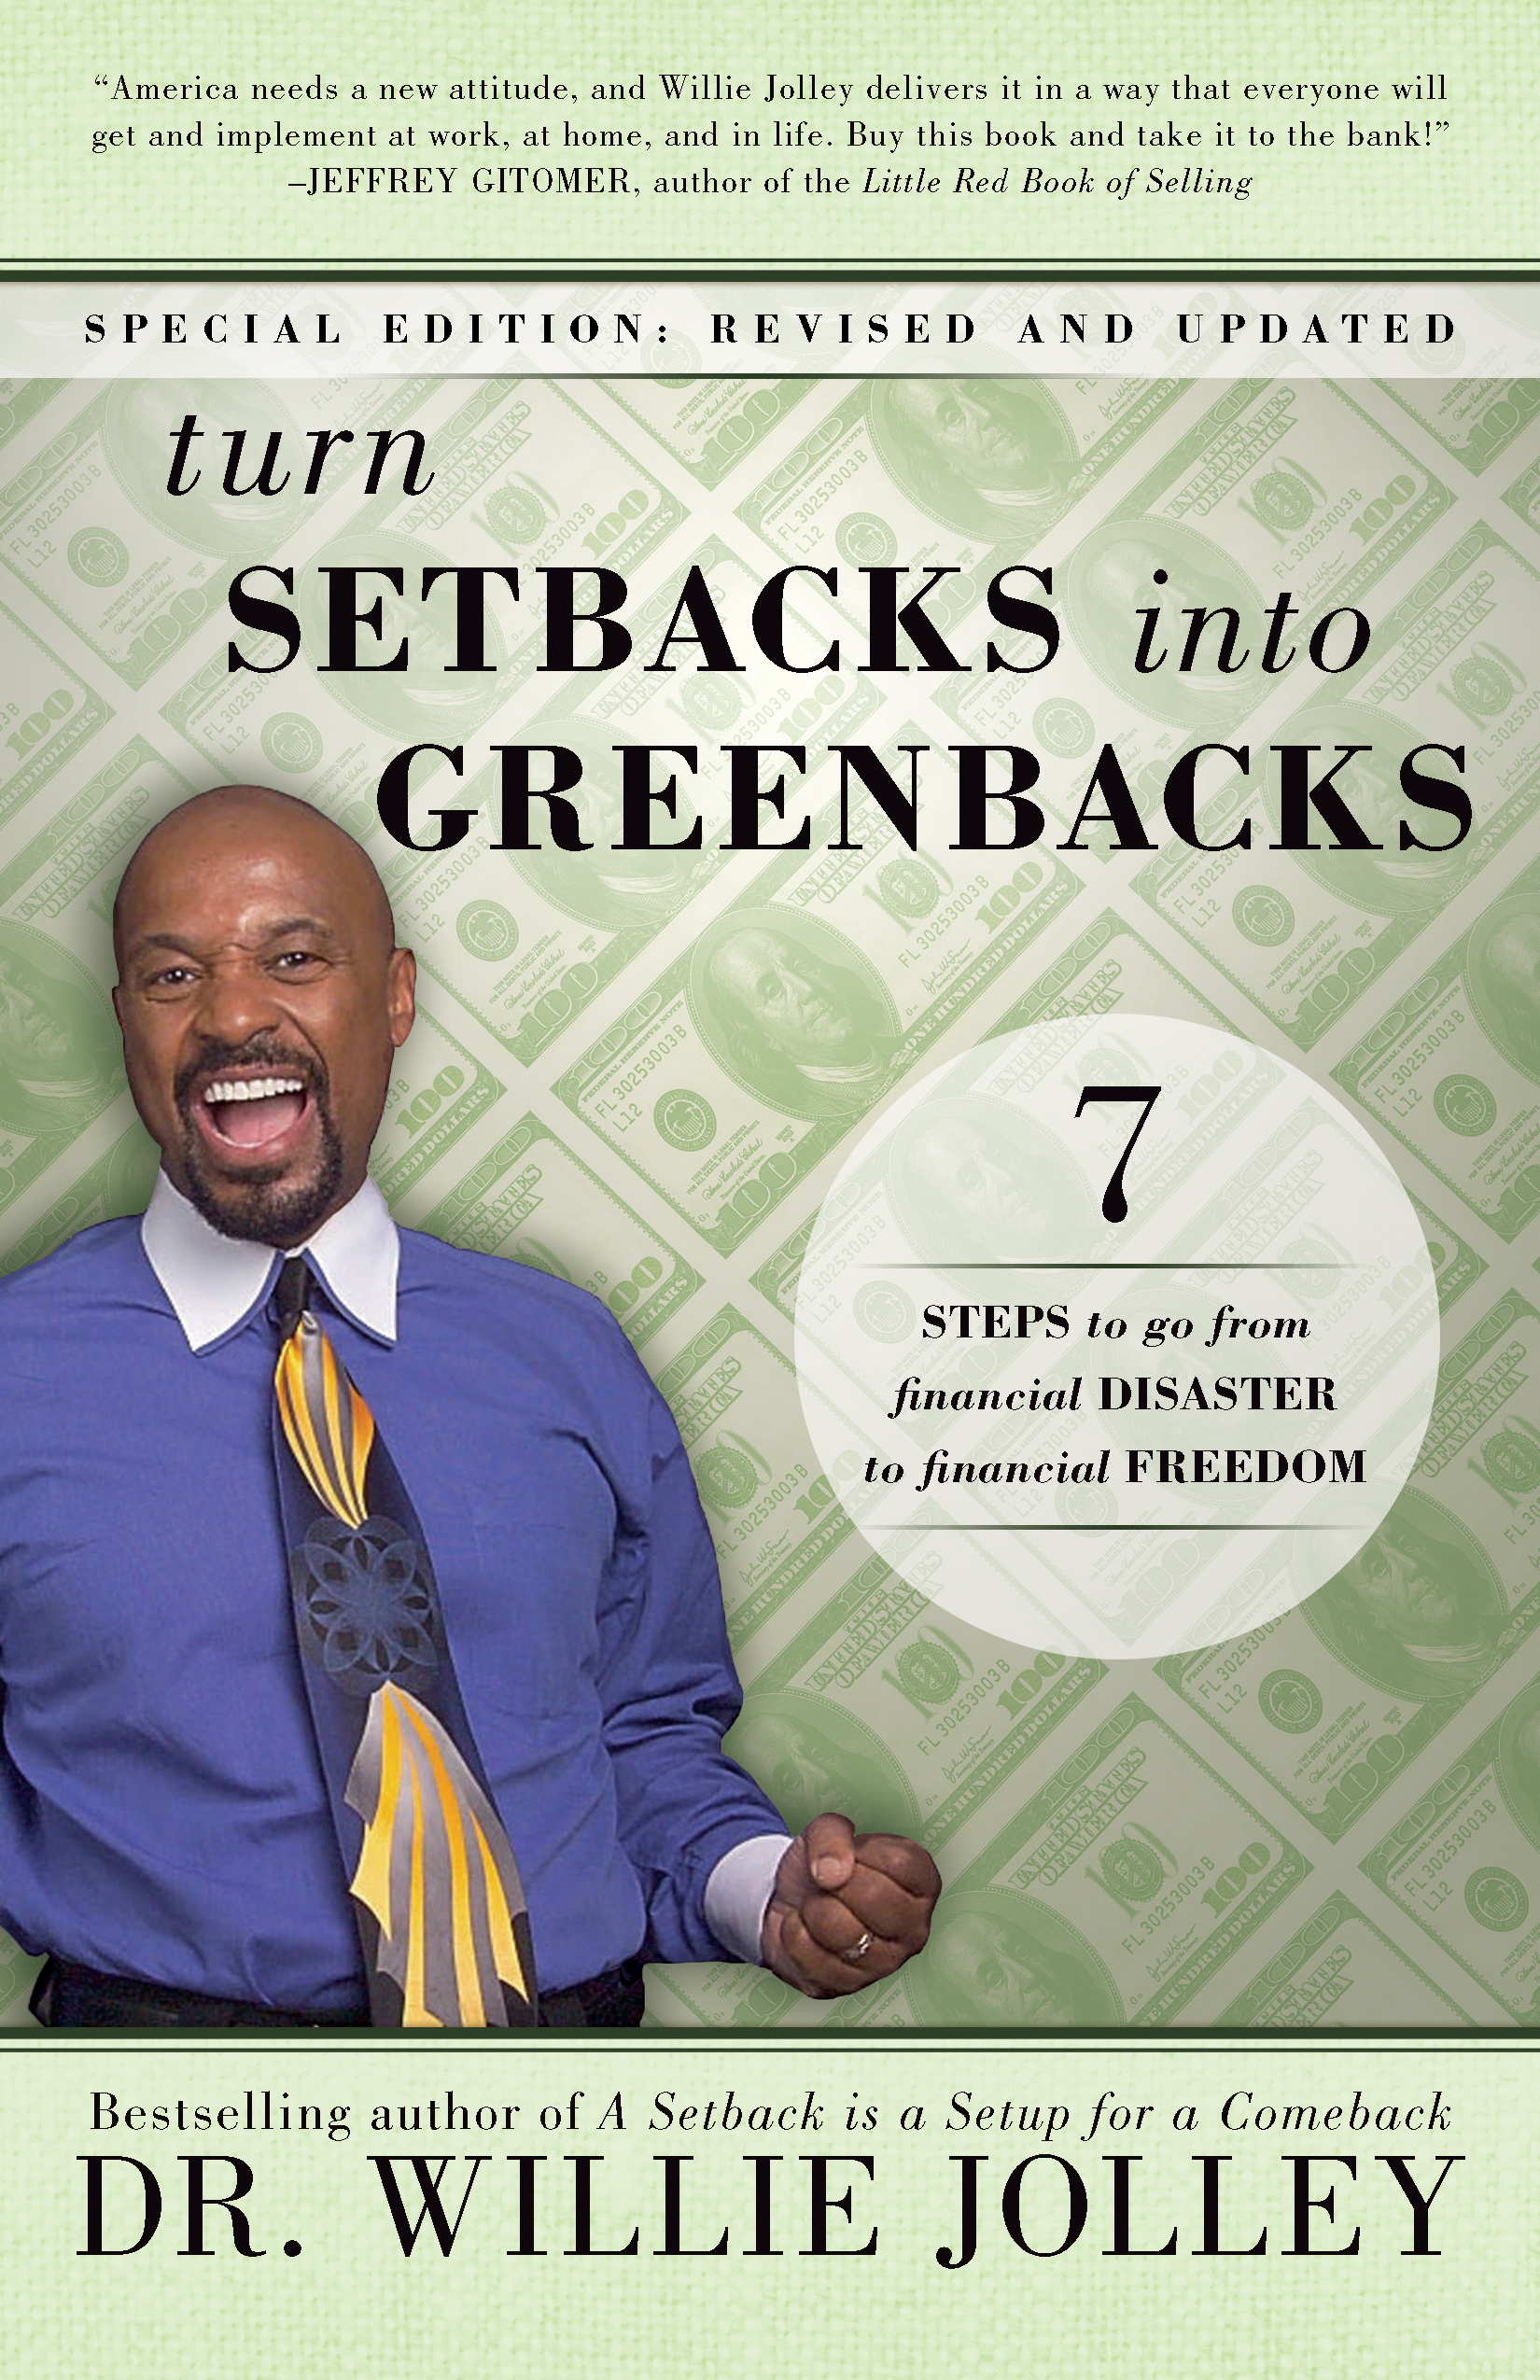 Turn Setbacks into Greenbacks - By dr. willie jolley